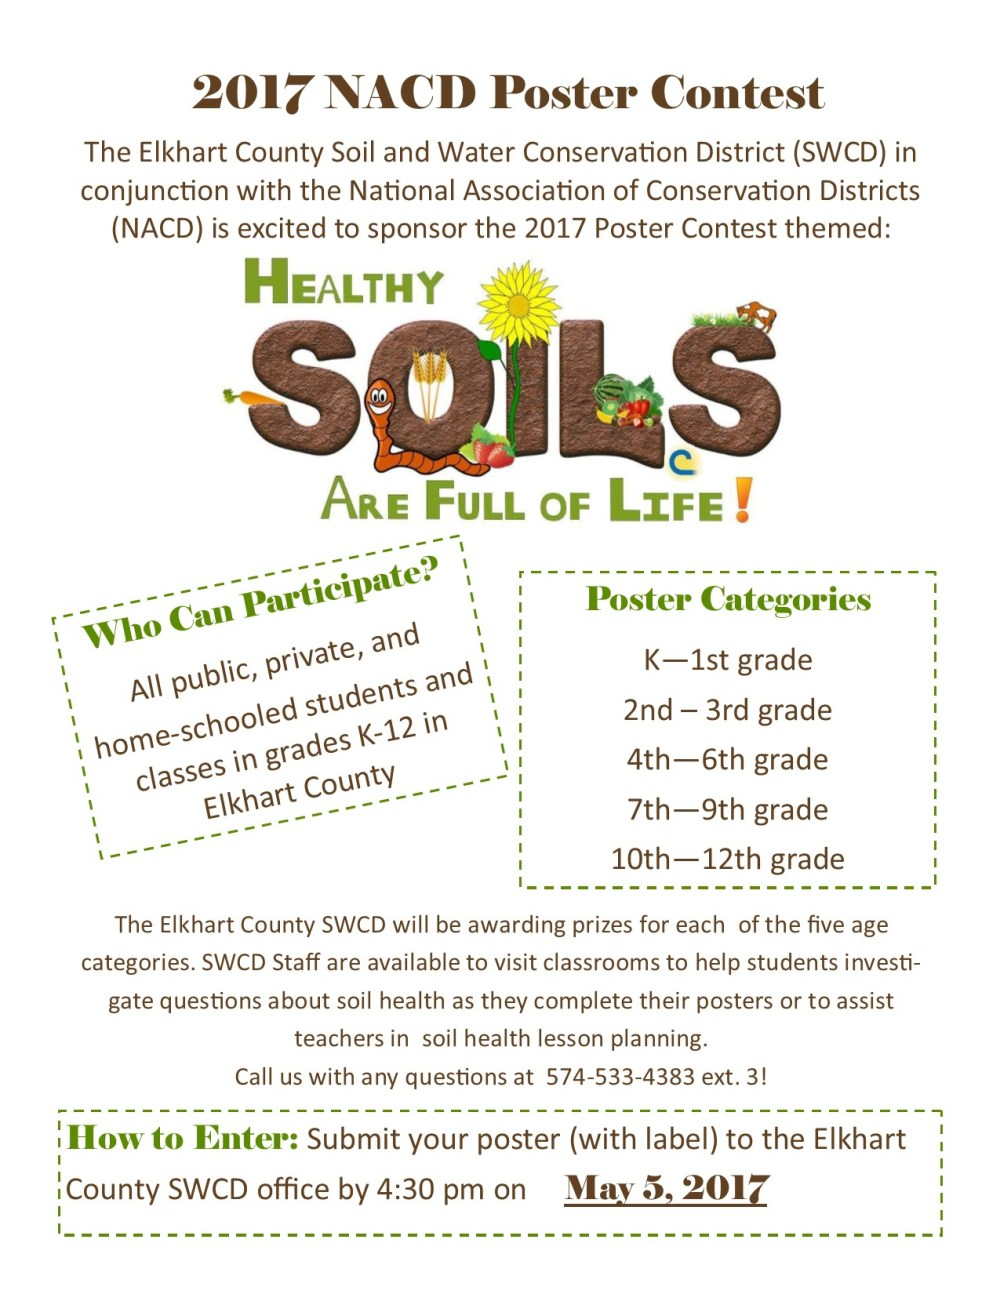 medium resolution of Poster Contest 2017 – Our mission is to assist landusers and other agencies  in the wise use of natural resources in Elkhart County.